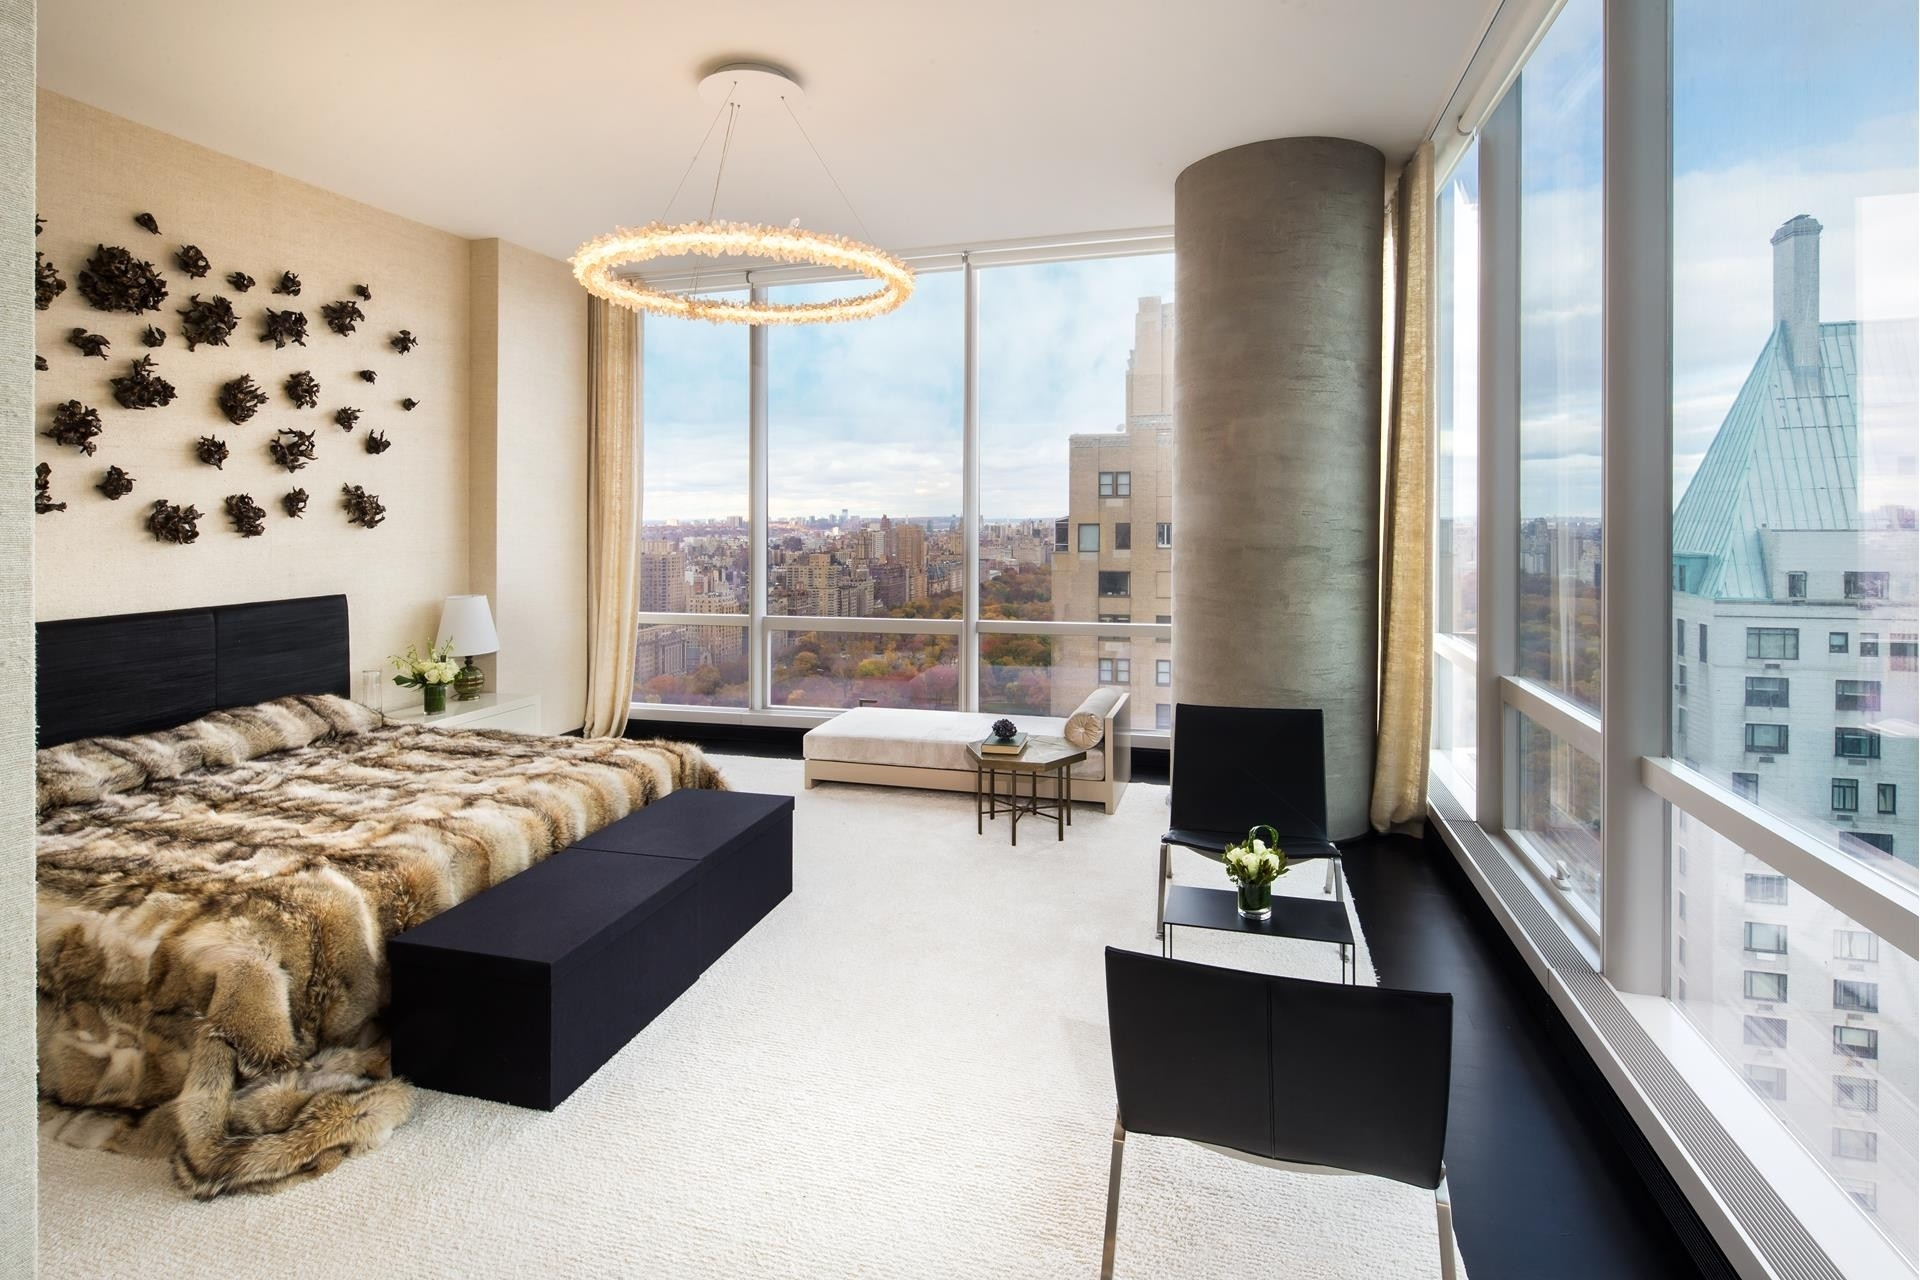 4. Condominiums for Sale at One57, 157 W 57TH ST , 41A Midtown West, New York, NY 10019